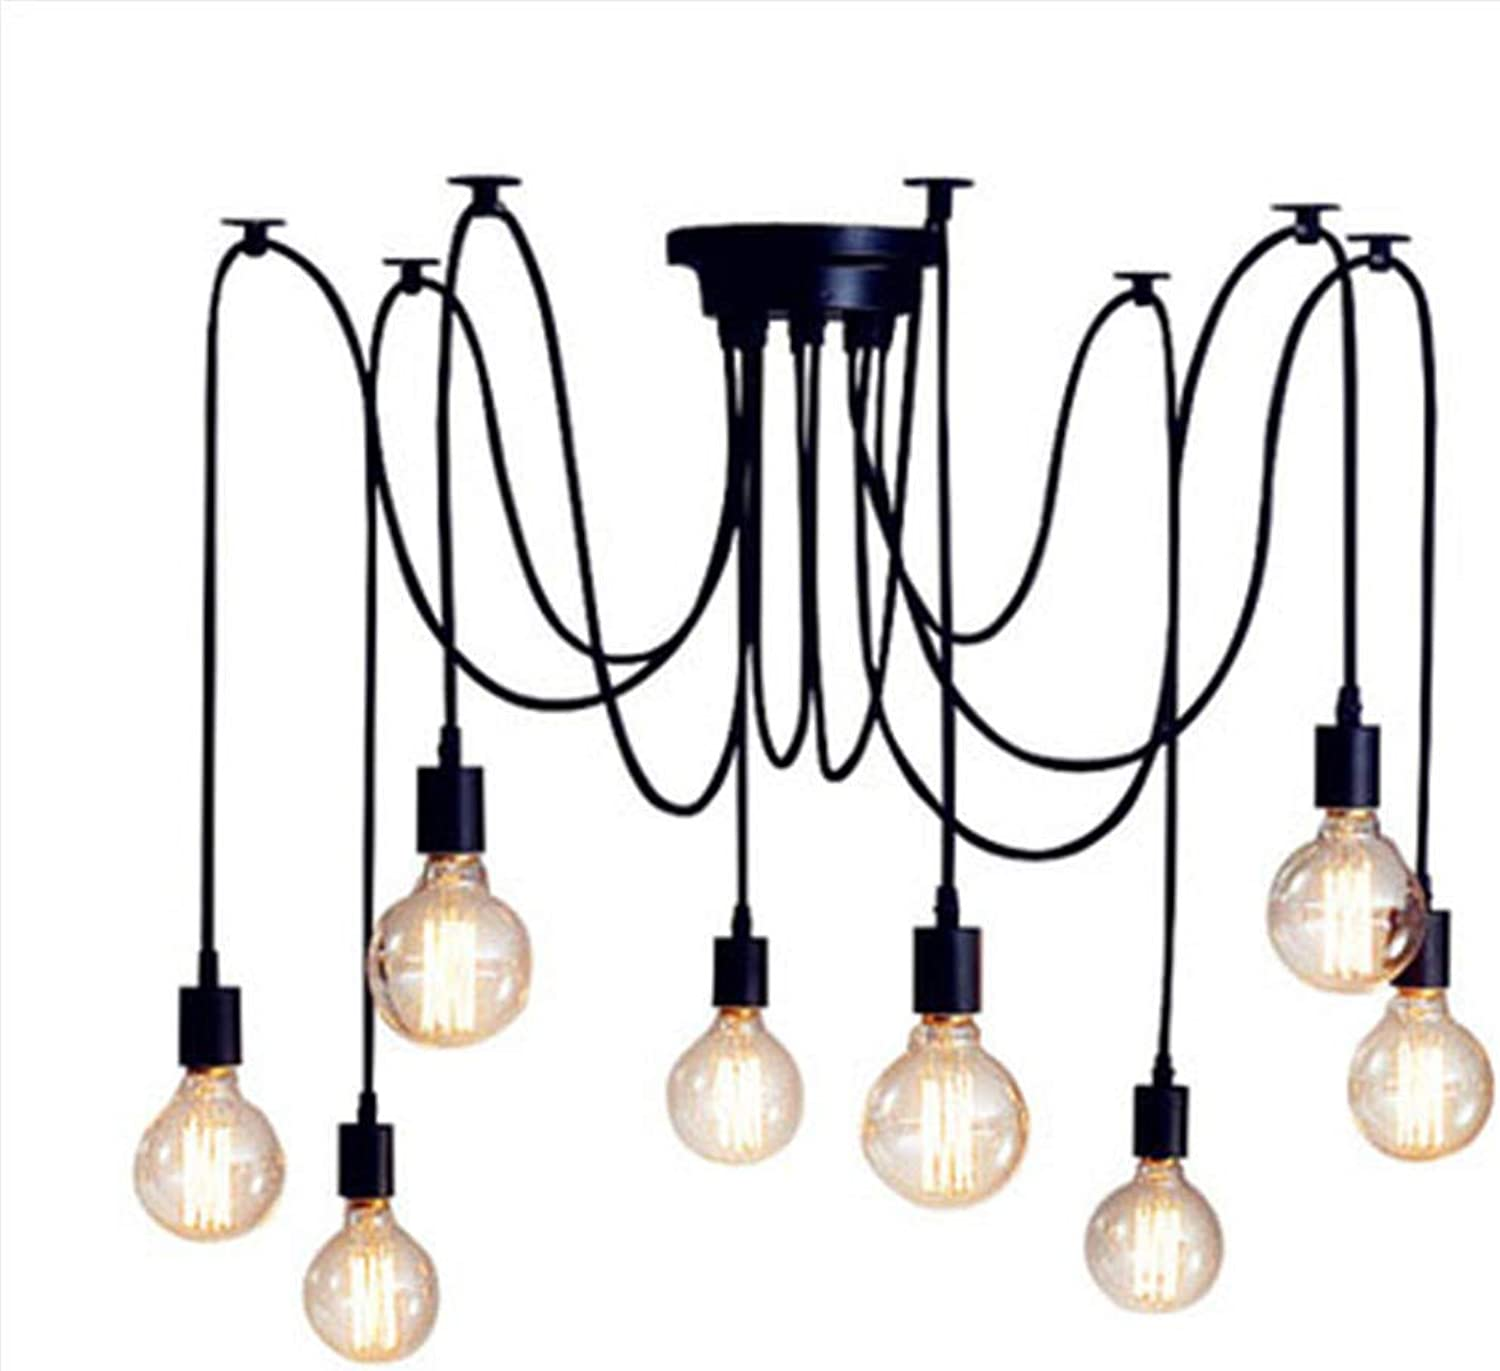 Classic Spider pendent Lampen, Ajustable DIY Ceiling Spider Light E27, Rustic Chandelier, Industrial Hanging Light Dining Hall Bedroom Hotel Decoration,12Arms